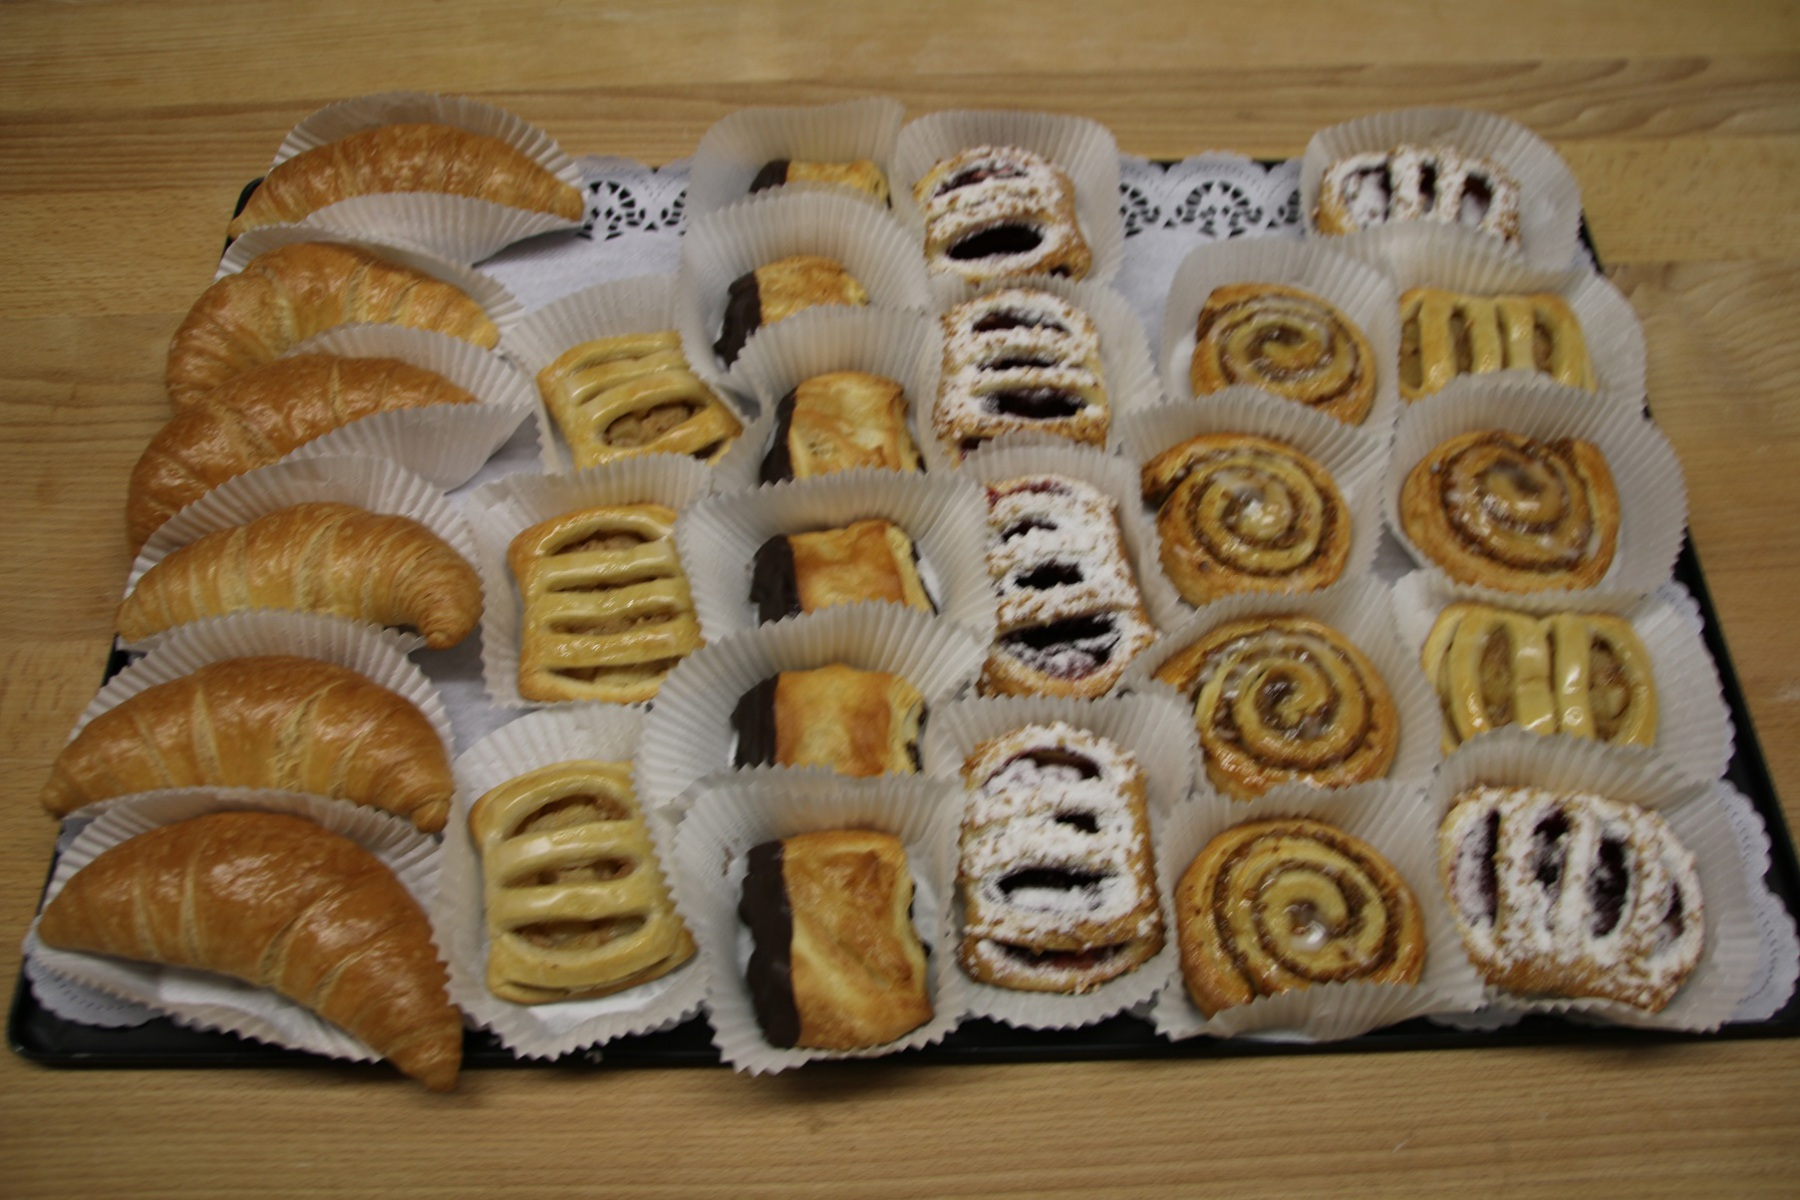 2015.25.06-Snack-Catering-18